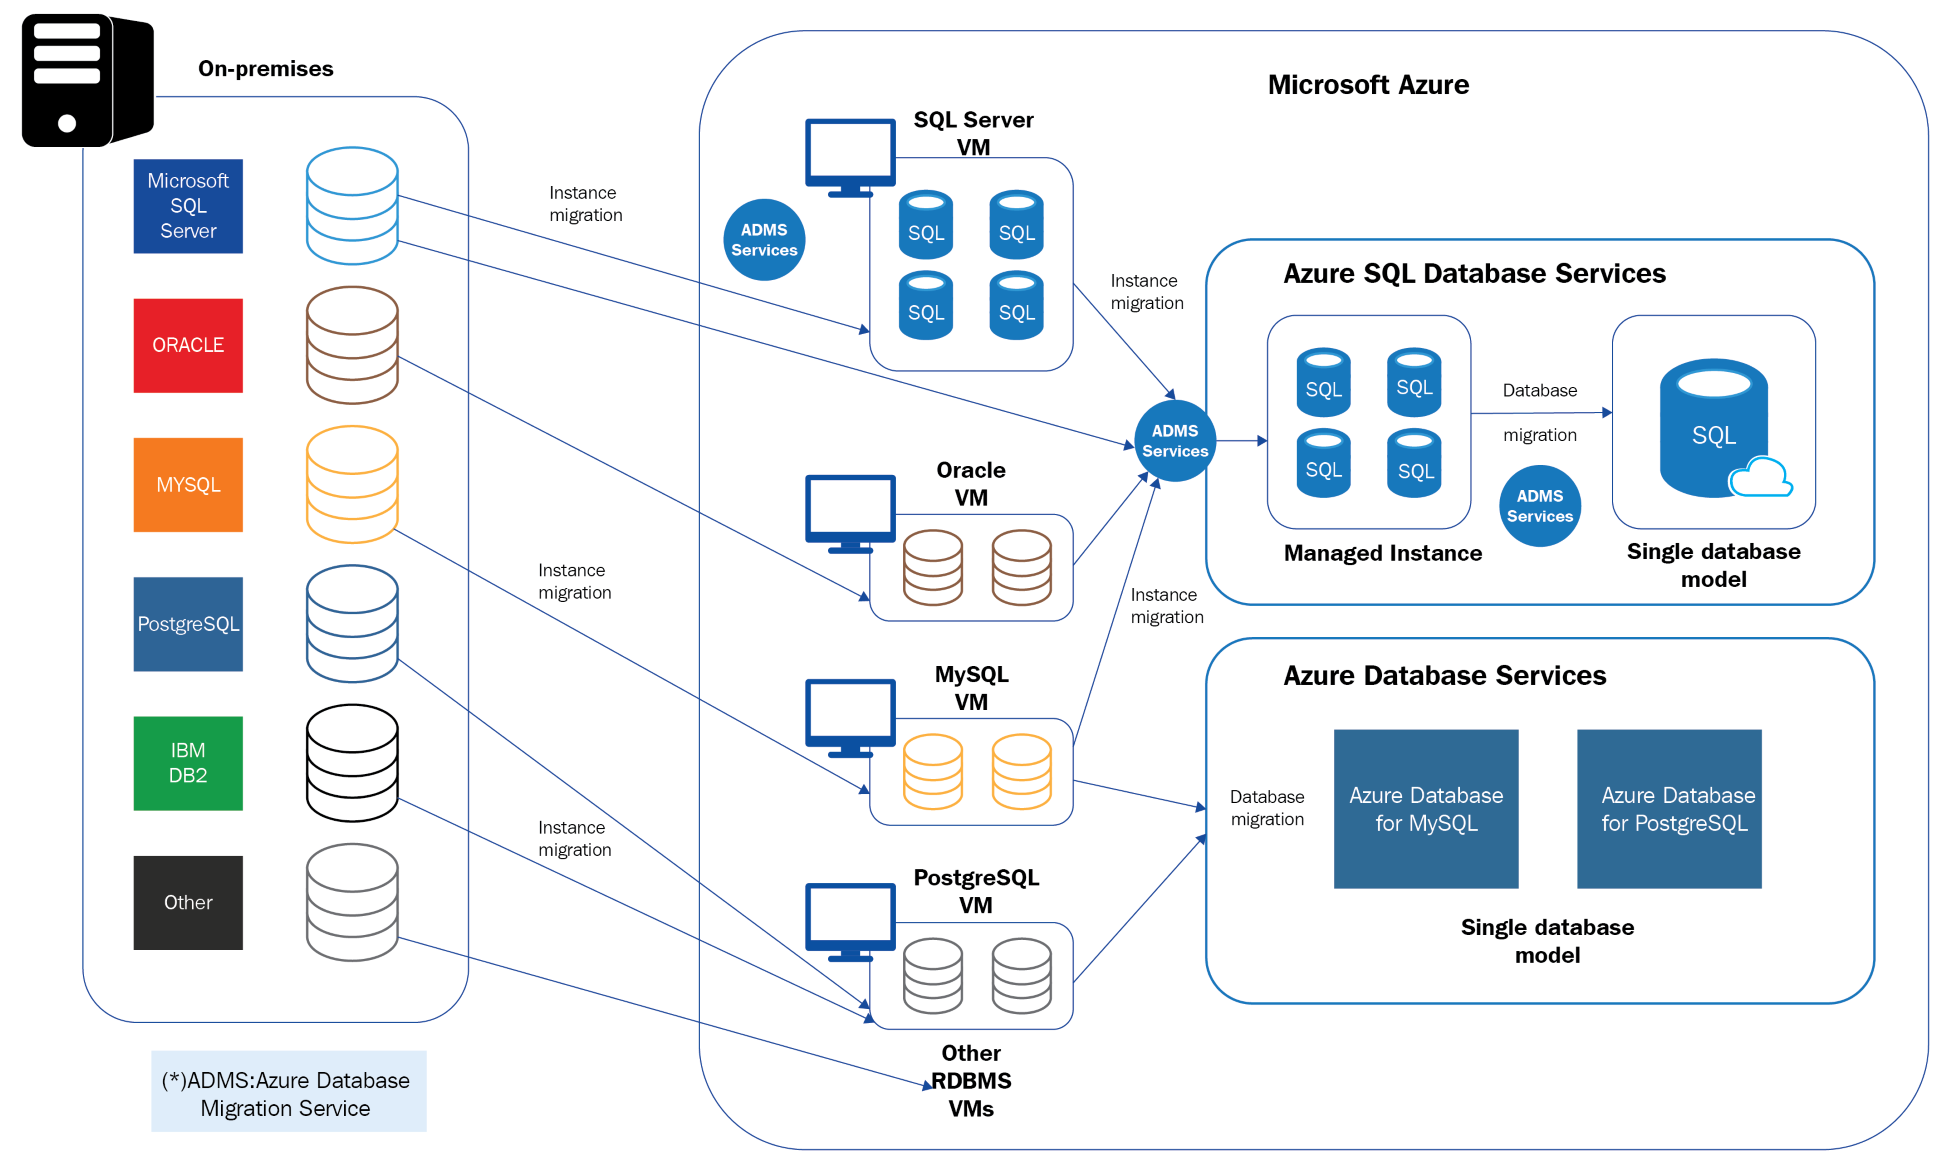 Designing a Multi-Cloud Environment with IaaS, PaaS, and SaaS